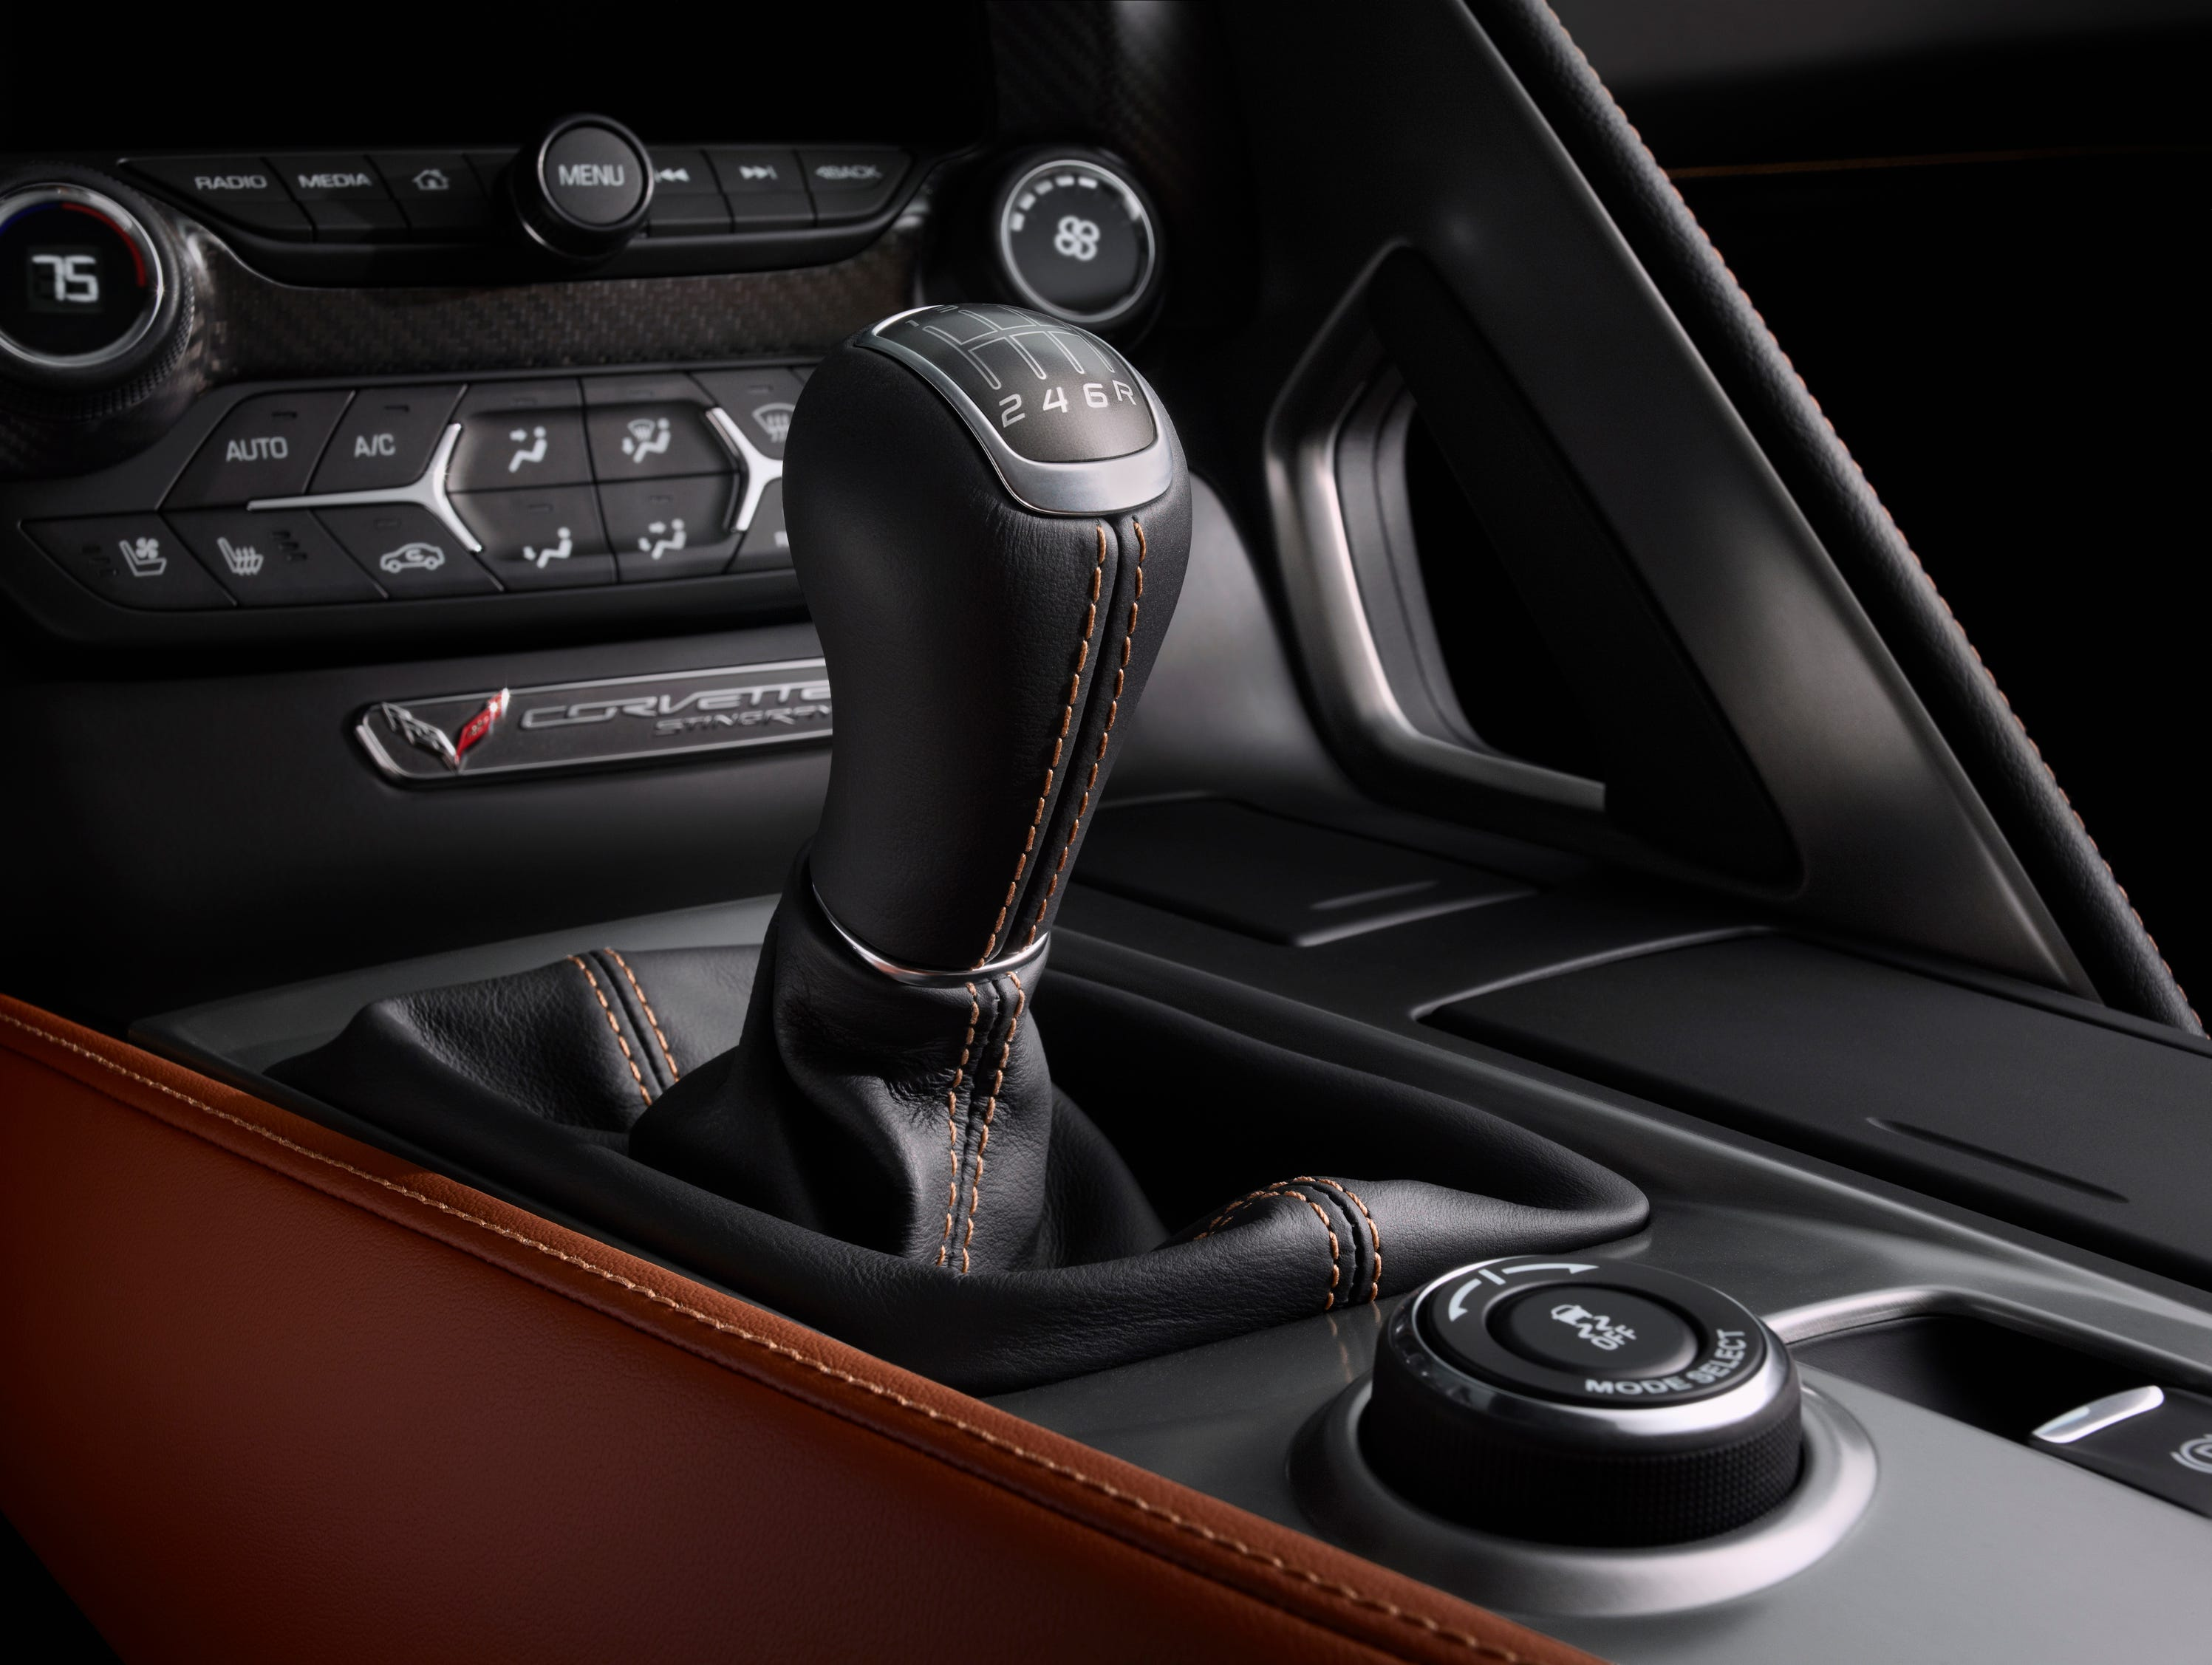 """The Stingray will offer a seven-speed manual transmission with """"active rev matching."""" The knob with the shifter is for selecting driving modes."""